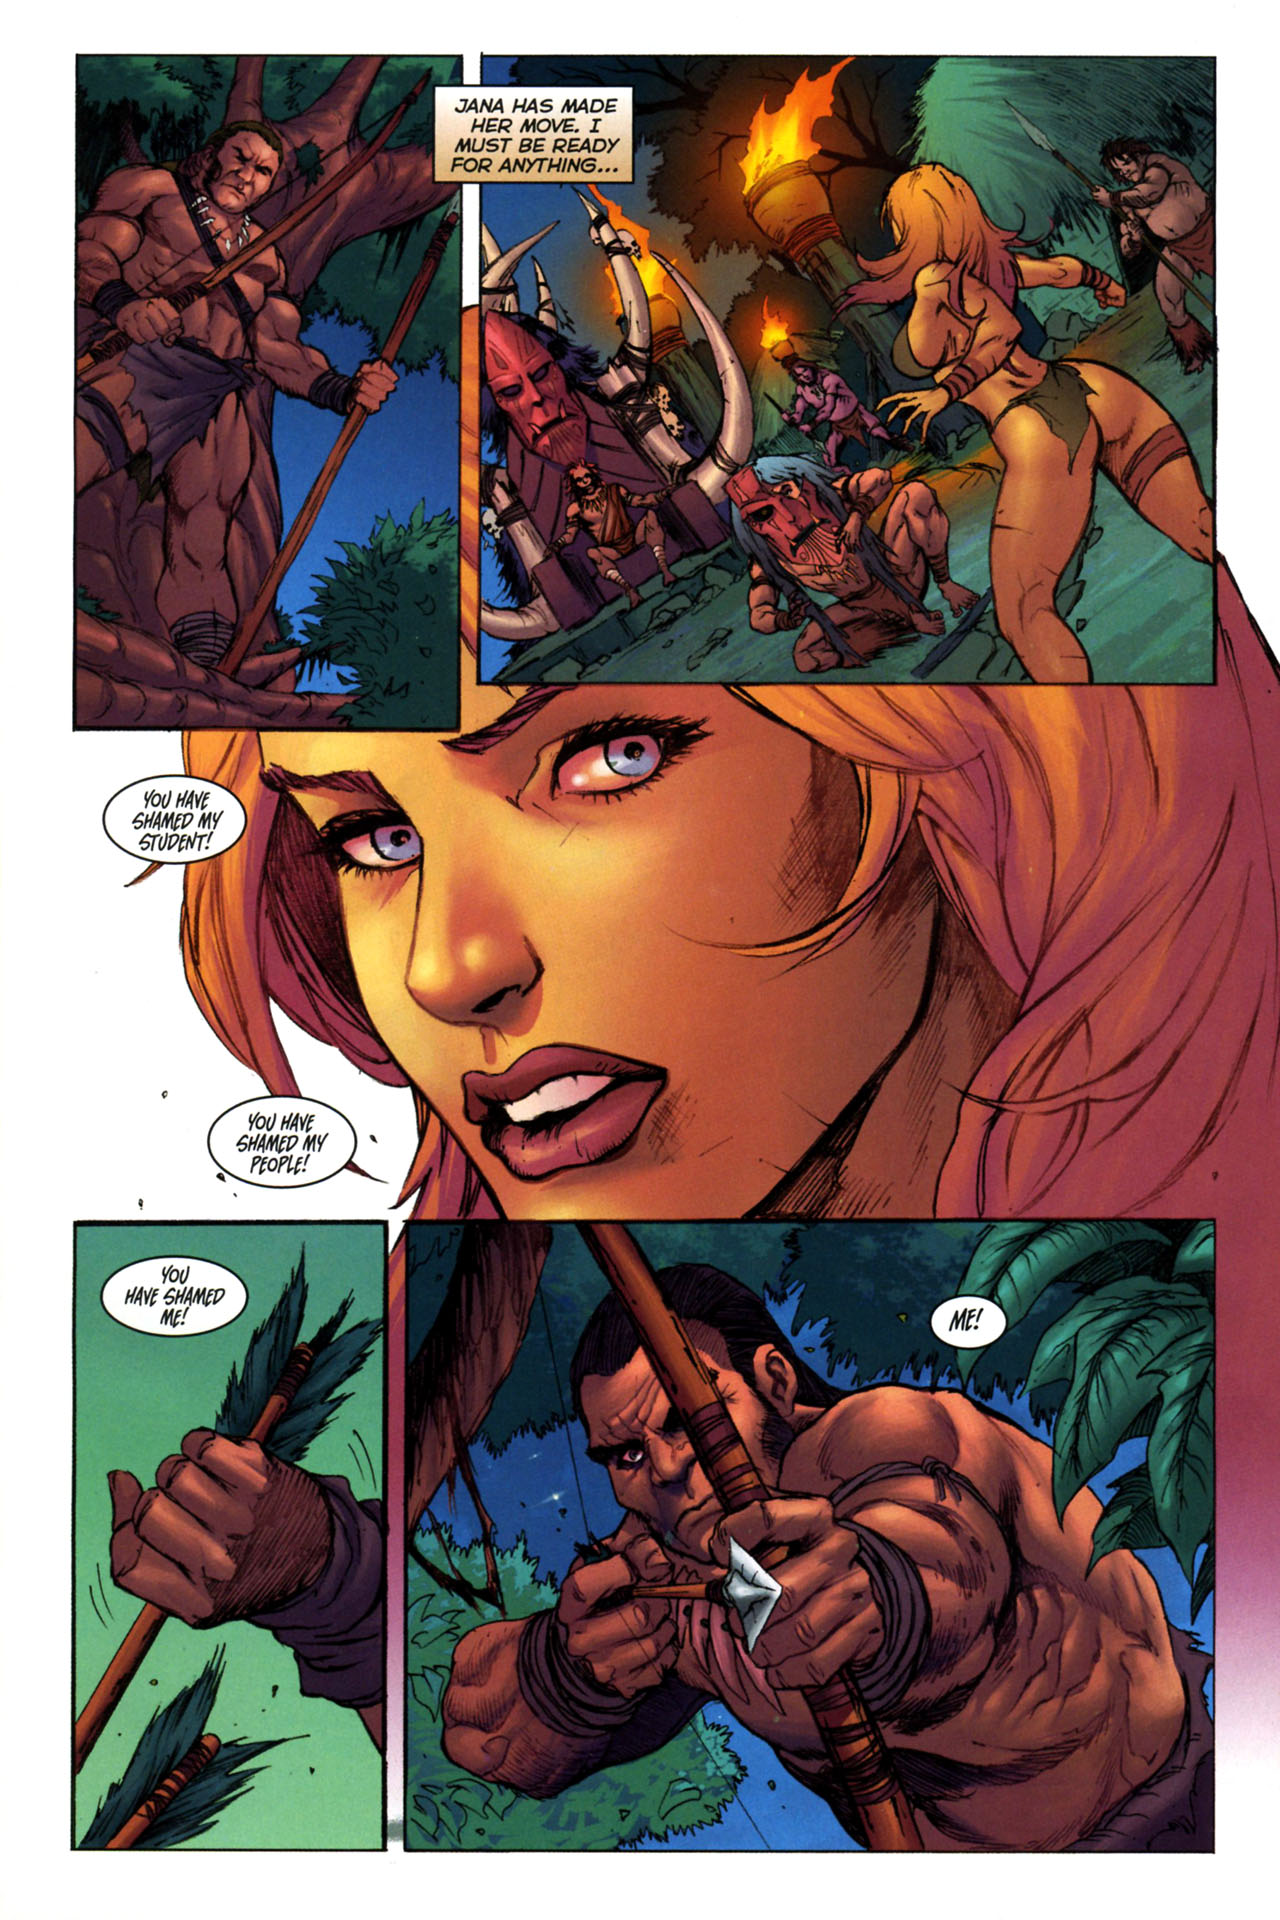 Read online Jungle Girl comic -  Issue #3 - 17